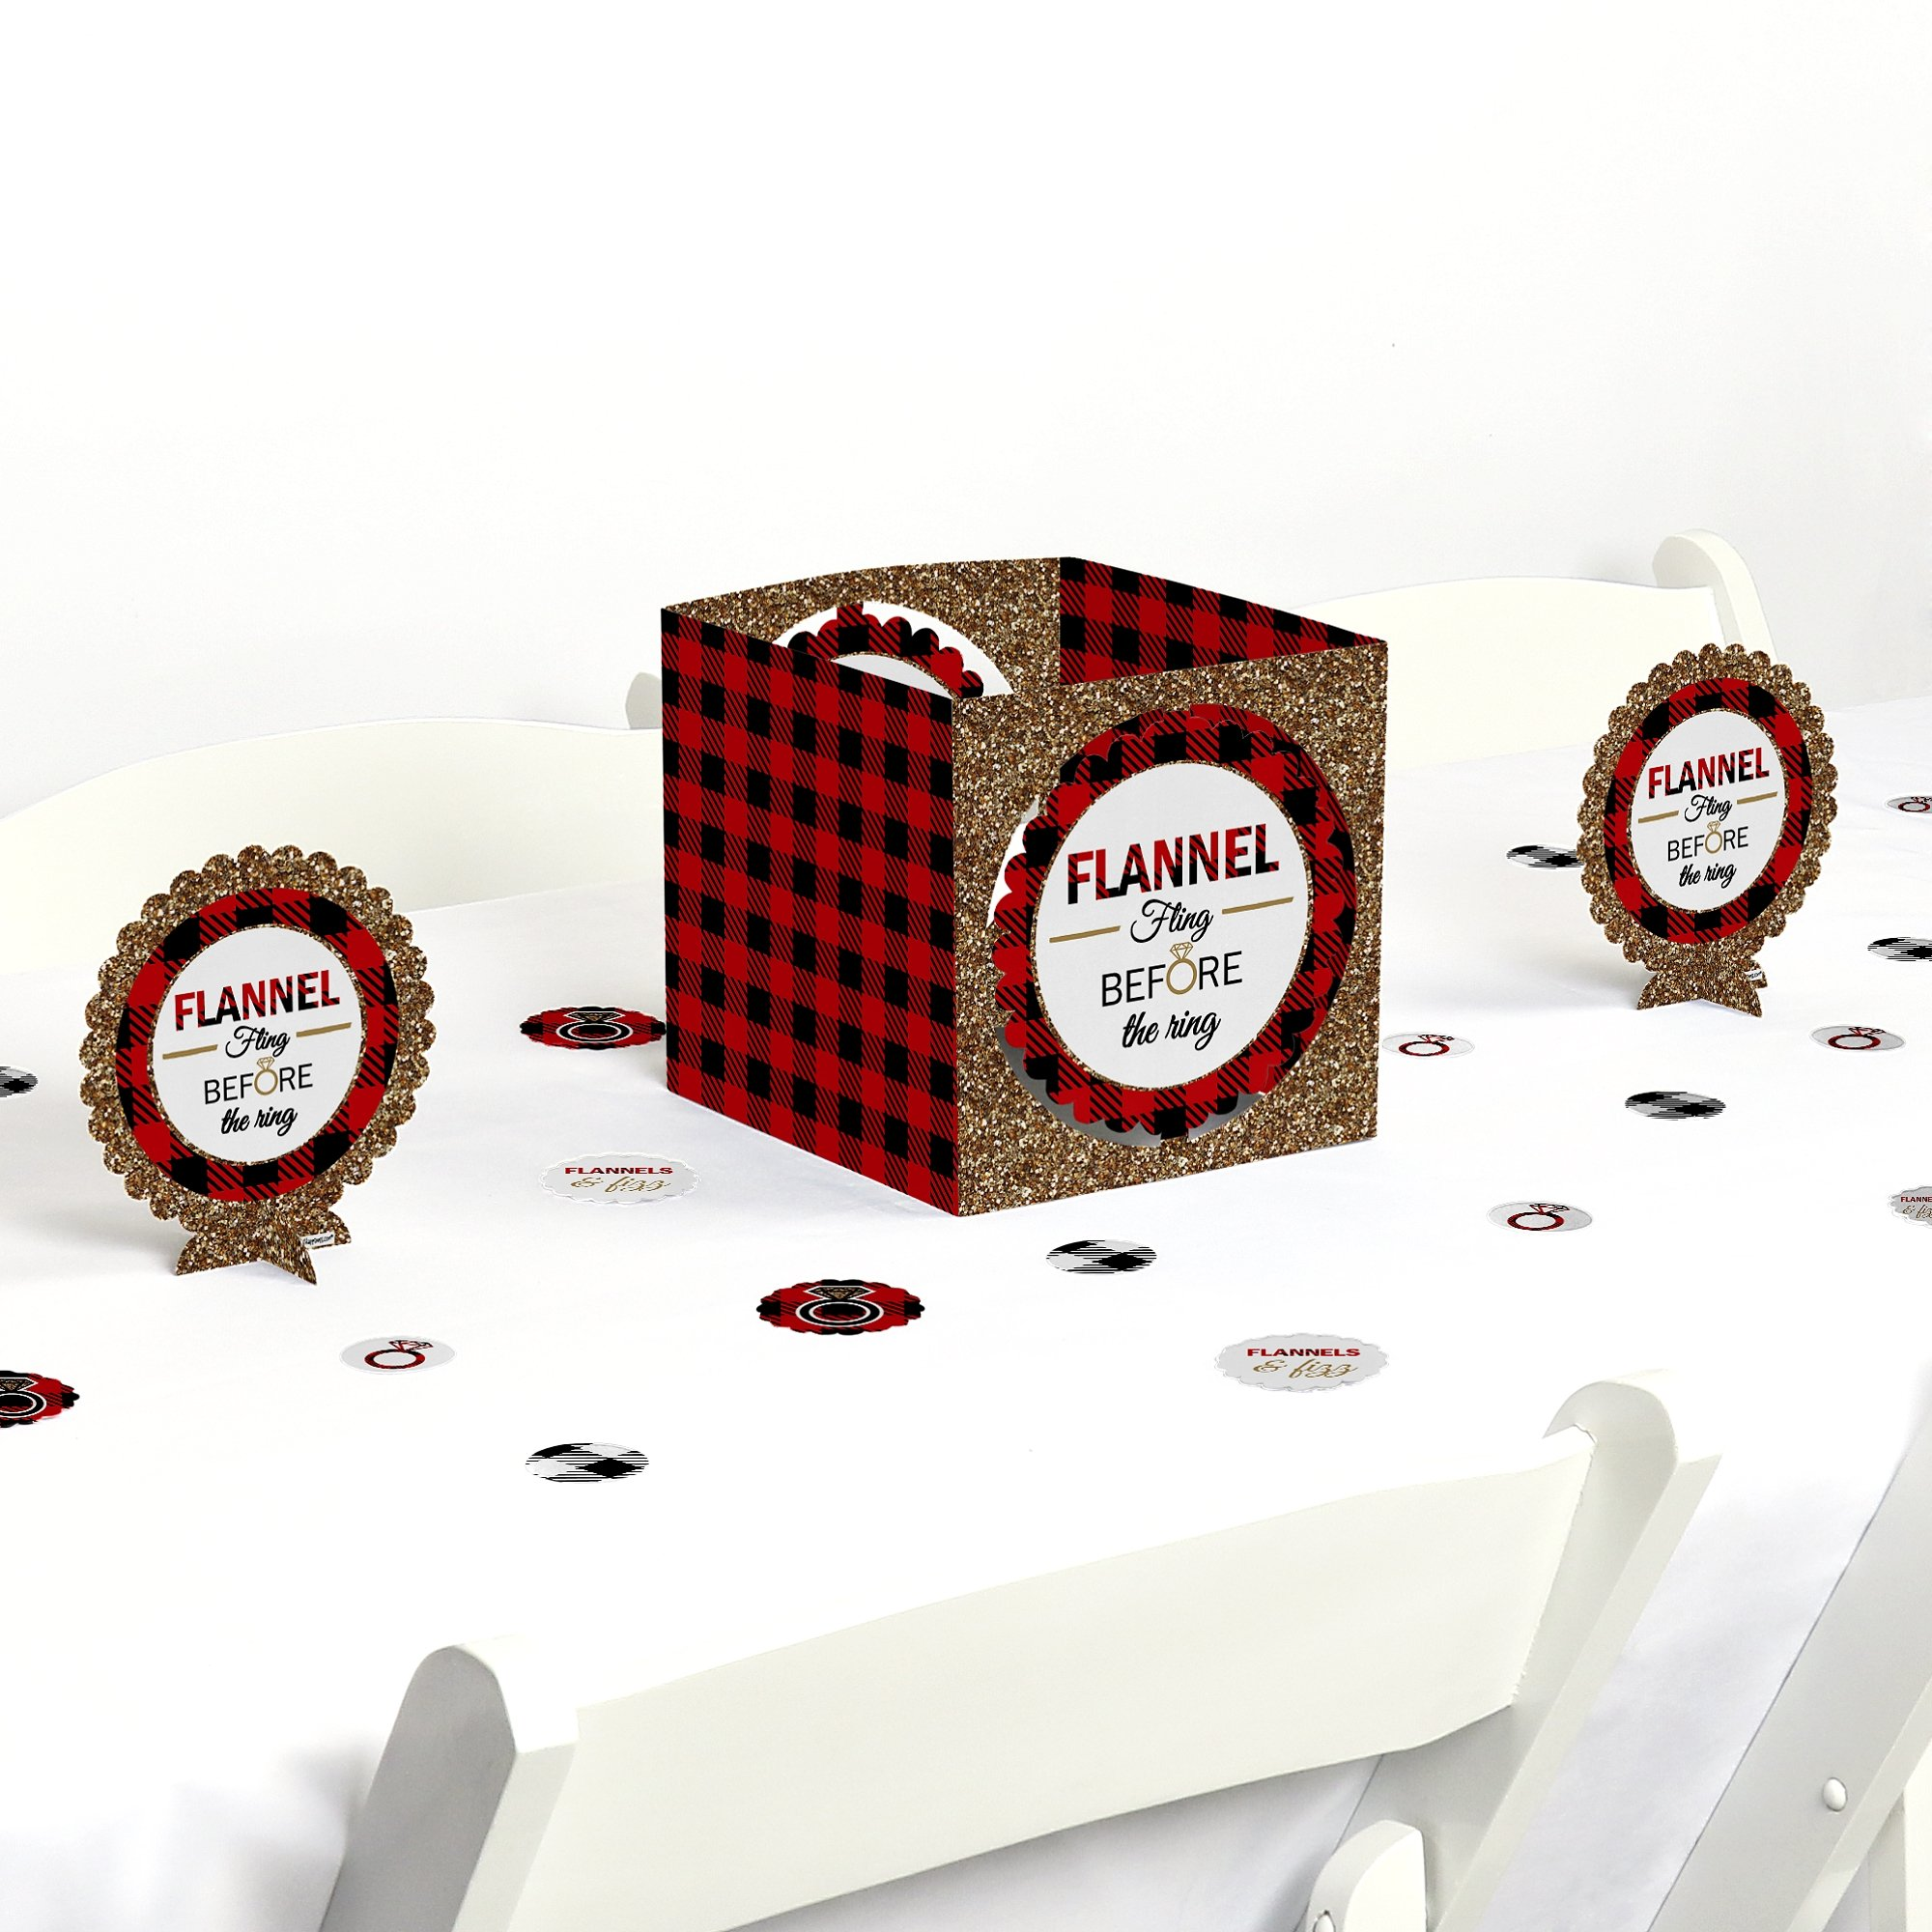 Flannel Fling Before The Ring - Buffalo Plaid Bachelorette Party Centerpiece & Table Decoration Kit by Big Dot of Happiness